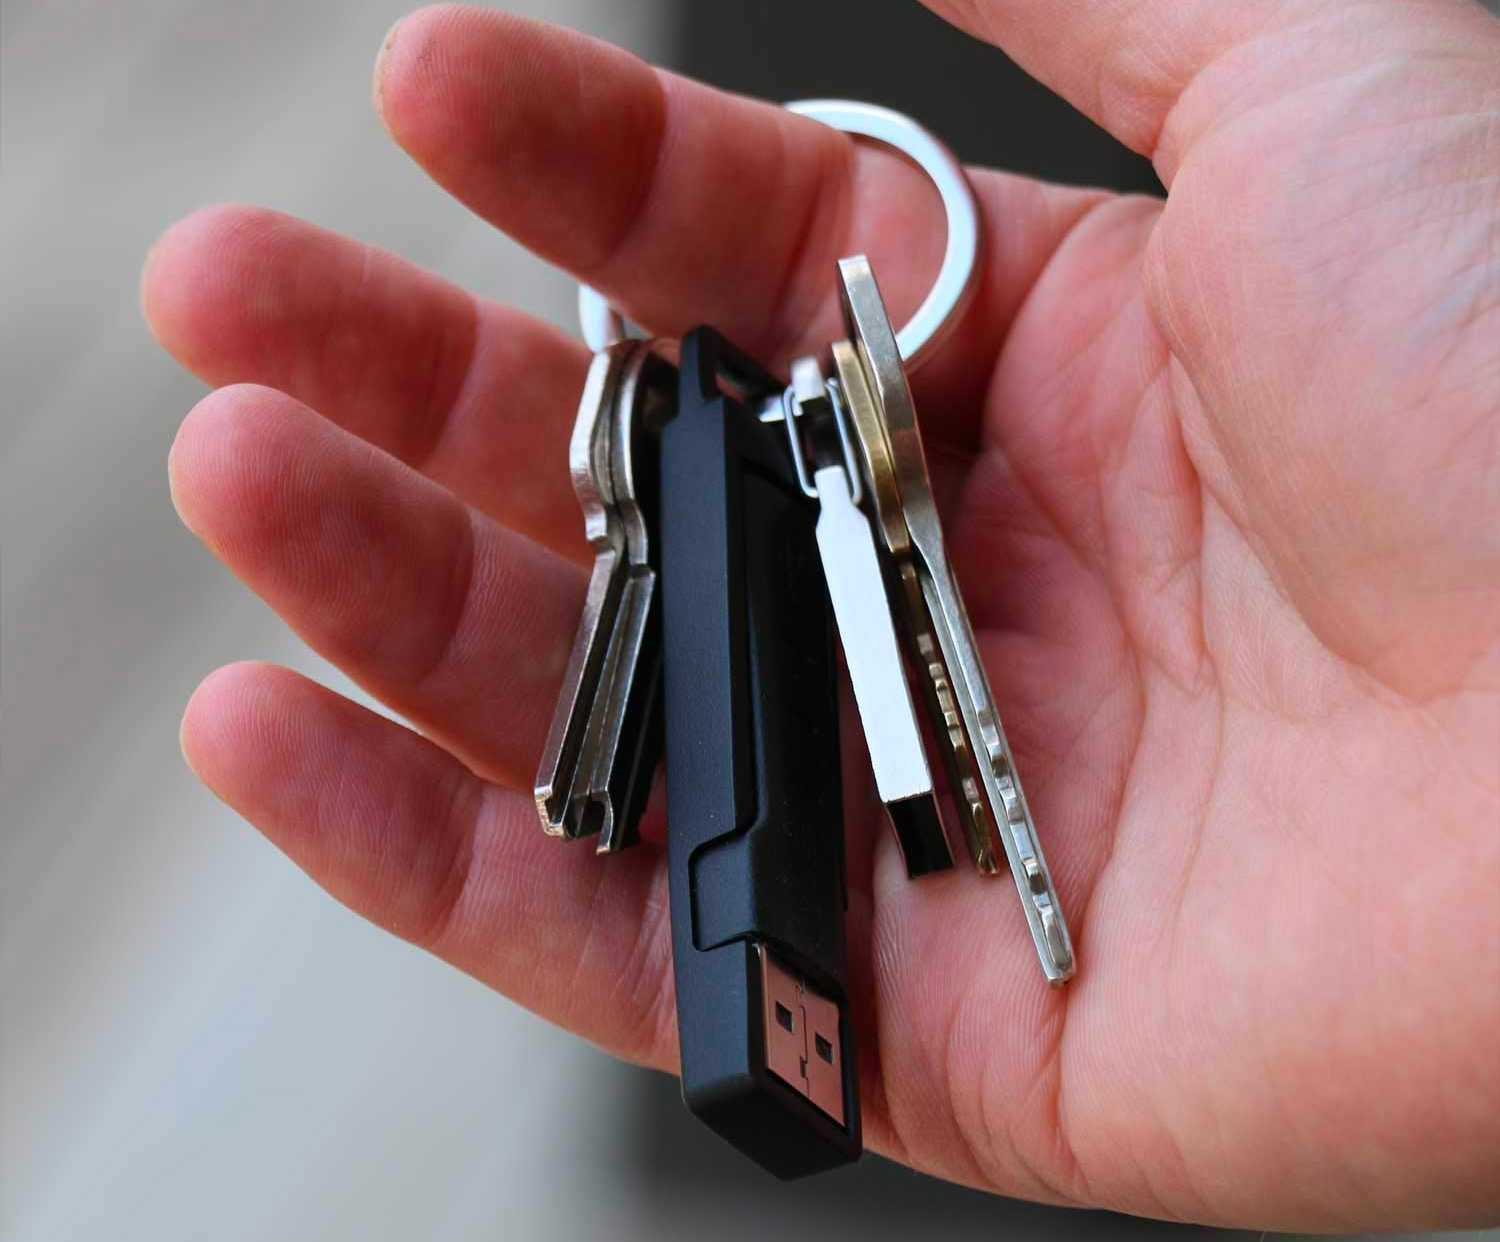 This Convenient Keychain Cable Makes Mobile Charging Easier at werd.com